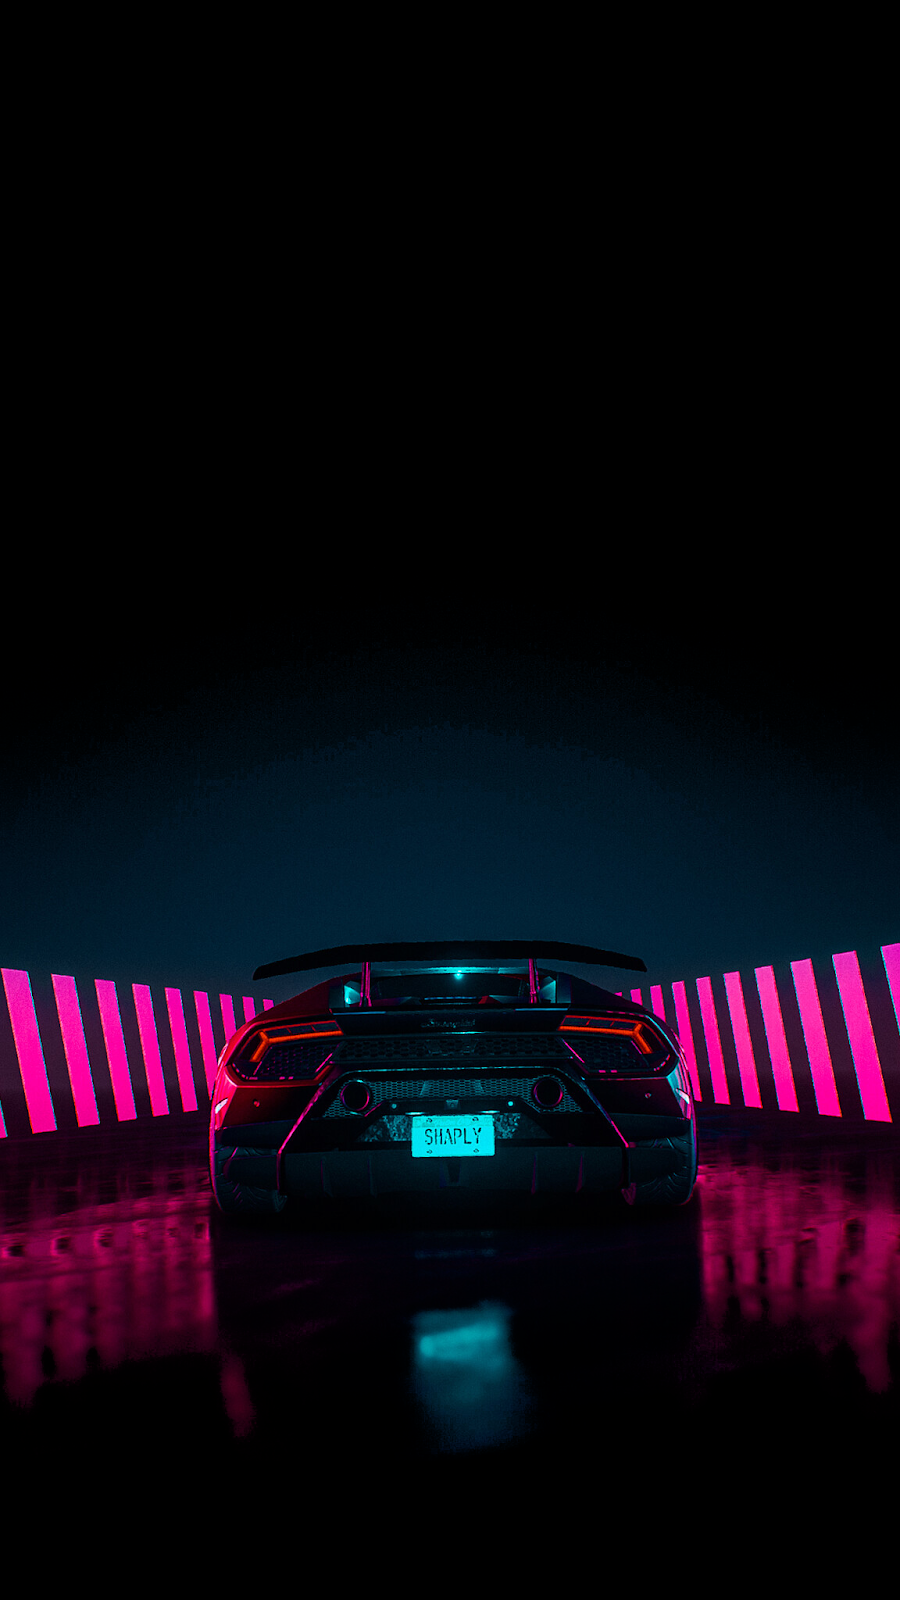 #cars #car #wallpaper #background #outrun #amoled #oled